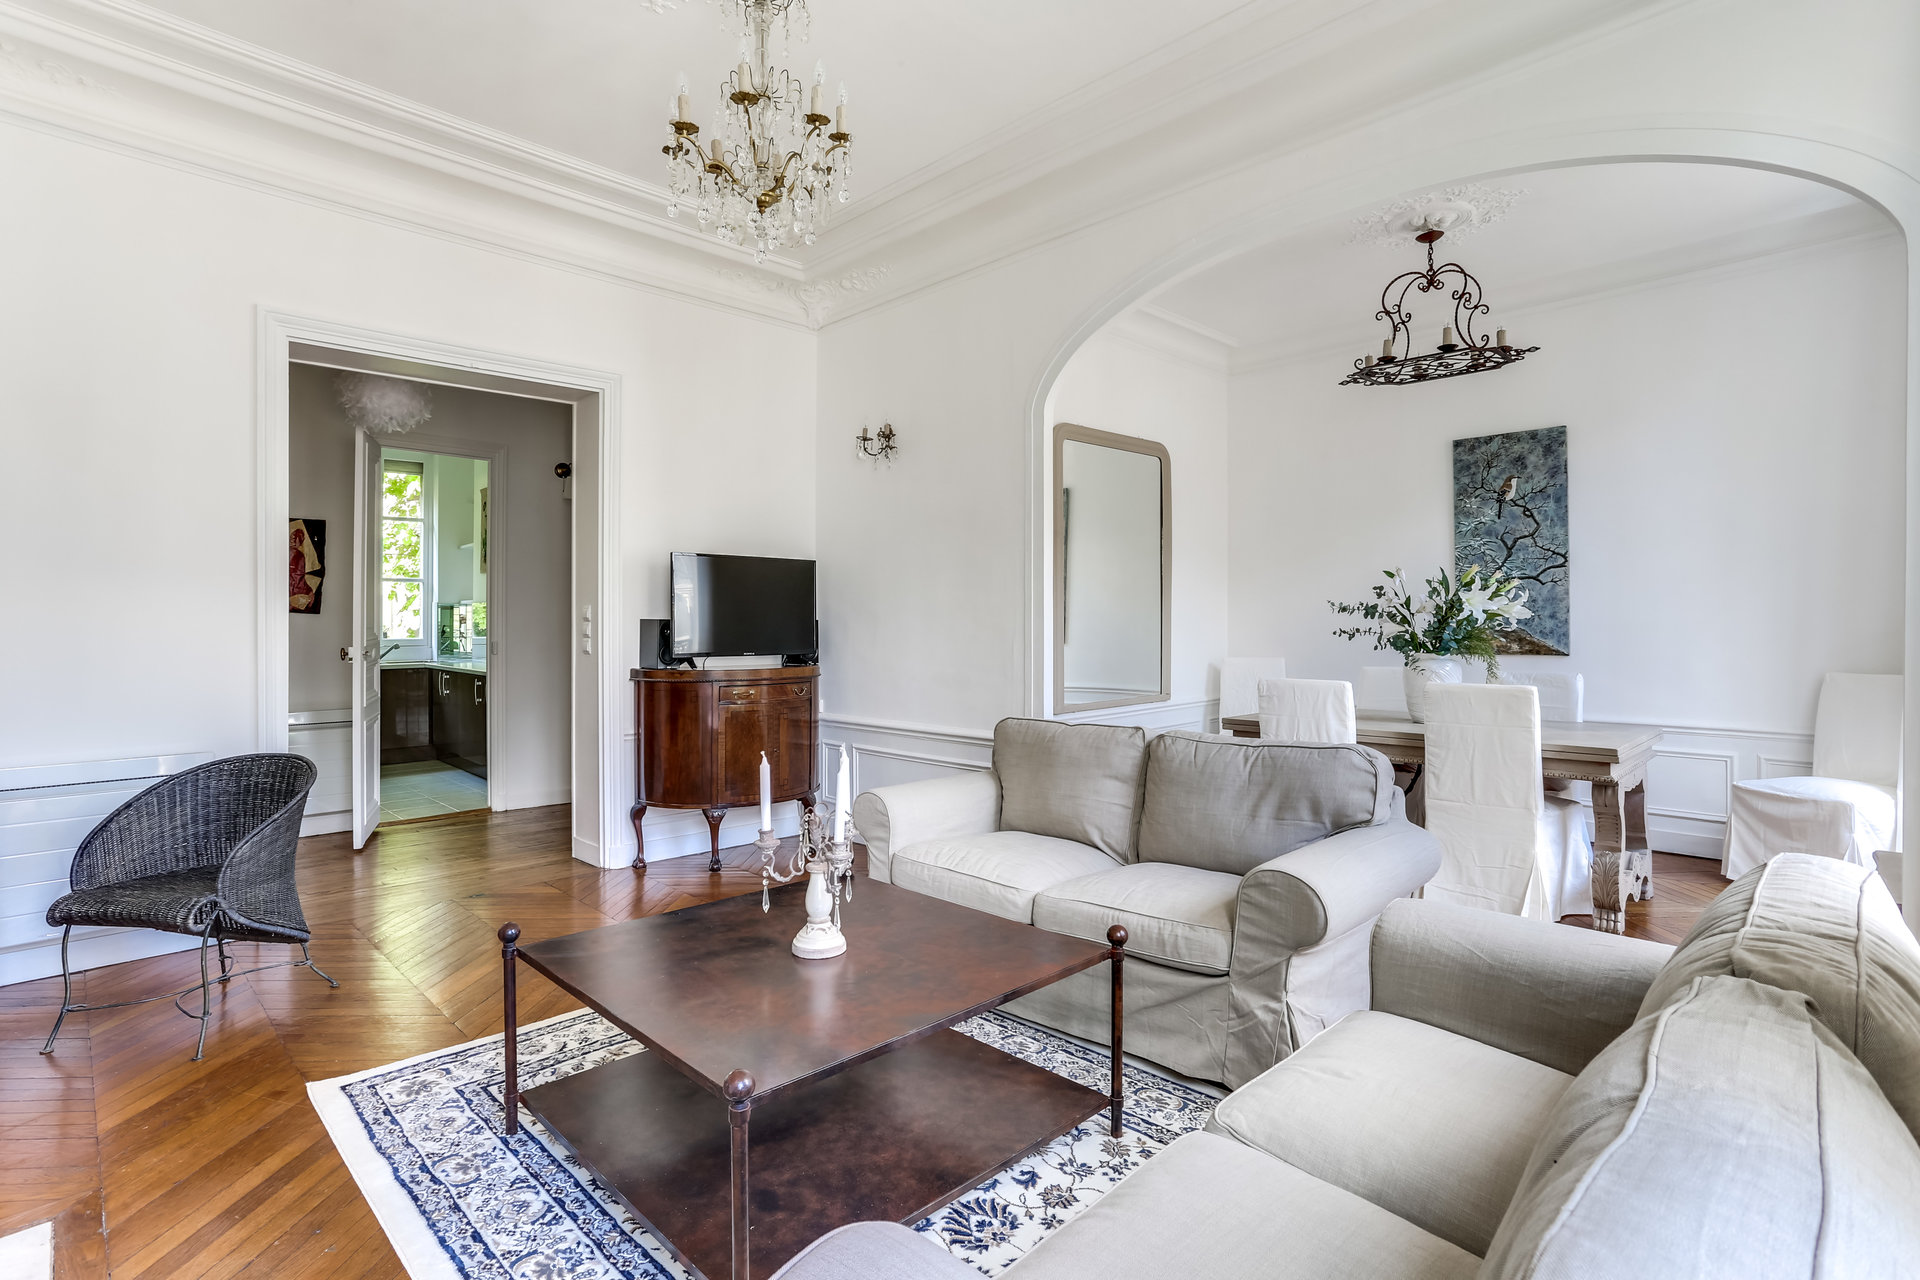 apartment-double-living-room-for-sale-old-charm-beautiful-open-view